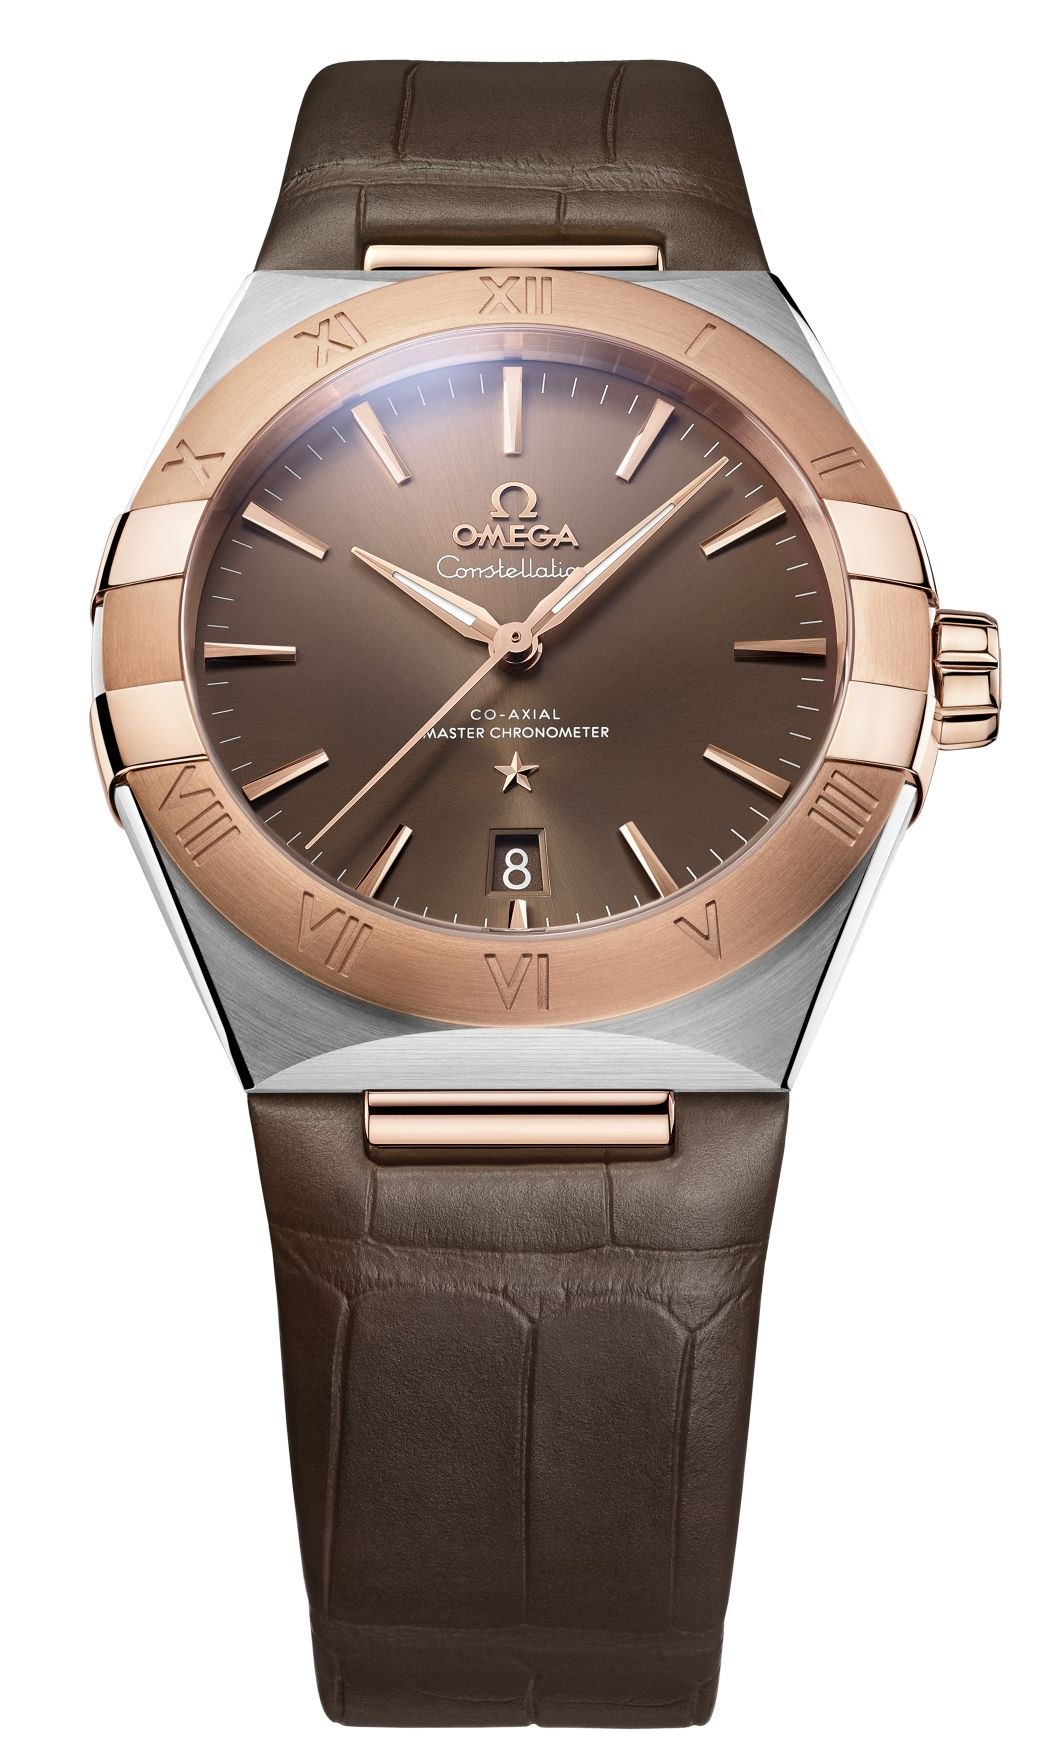 Omega Constellation 2020, Omega Constellation, Constellation 2020